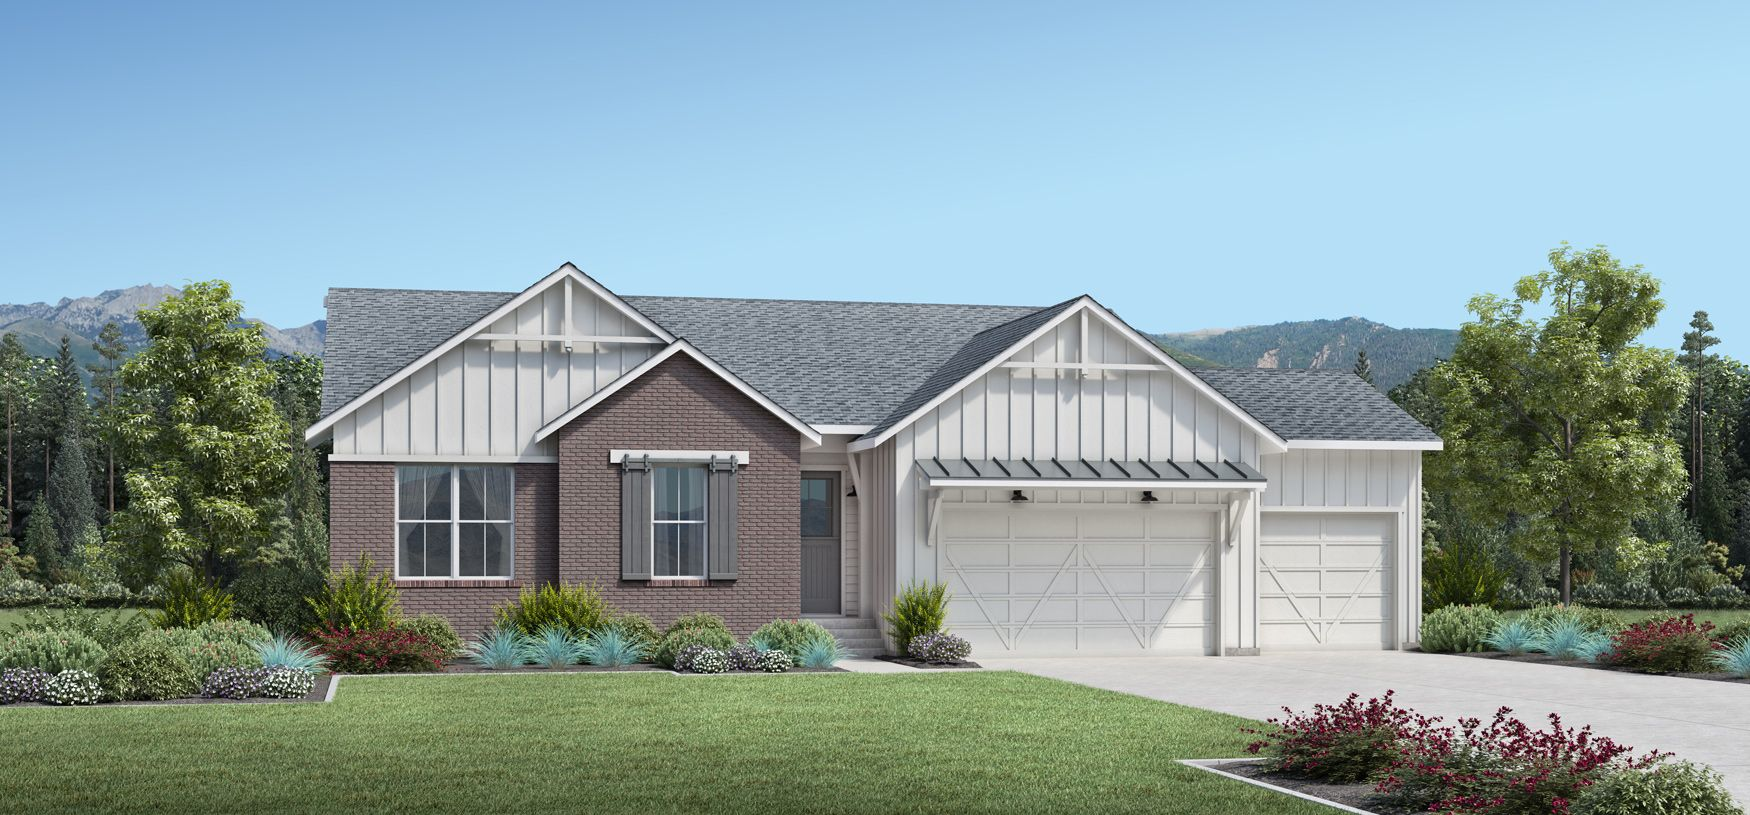 New Construction Homes Plans In Salt Lake City Ut 1 319 Homes Newhomesource